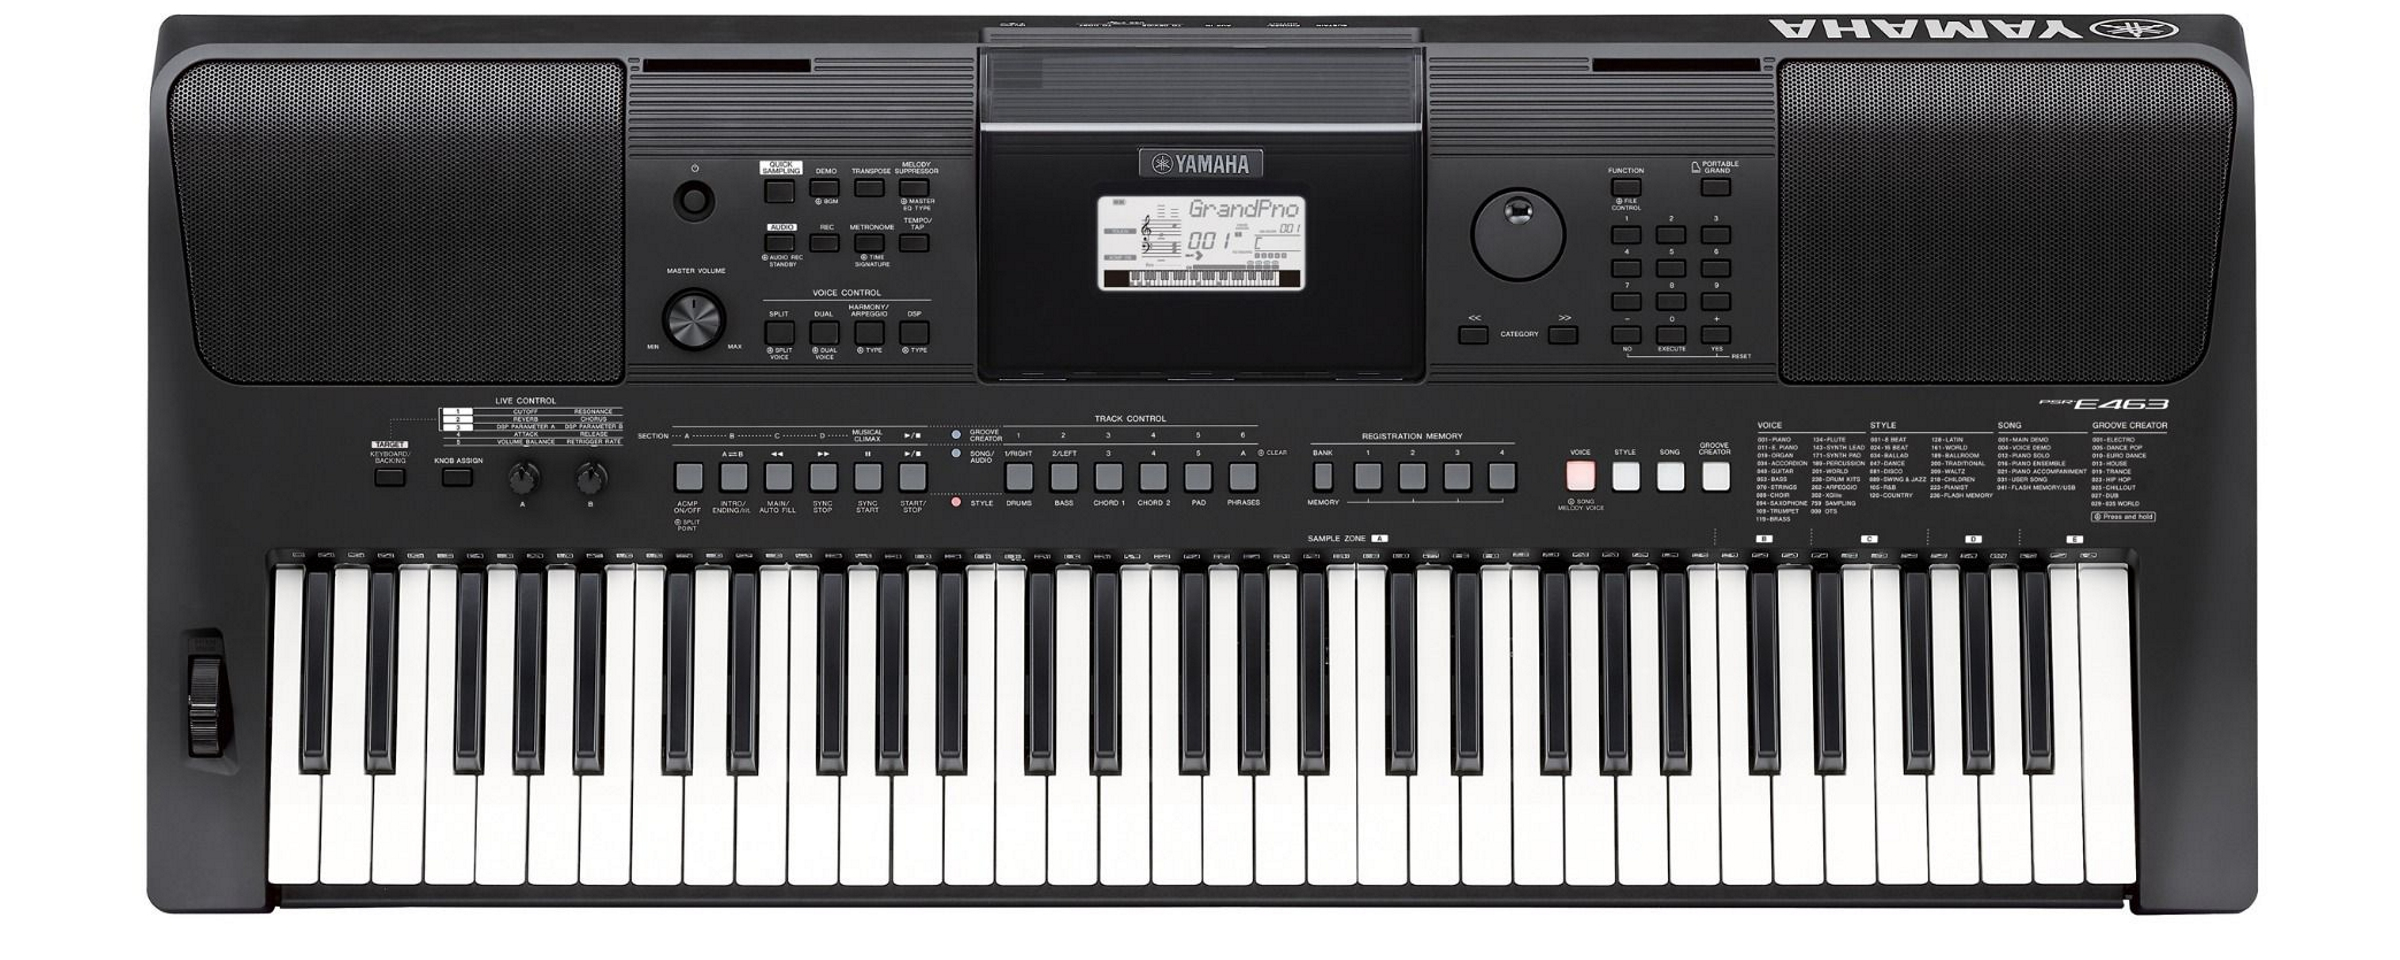 yamaha psr e453 portable keyboard ihr gro es musikfachgesch ft in nord ost bayern online kaufen. Black Bedroom Furniture Sets. Home Design Ideas